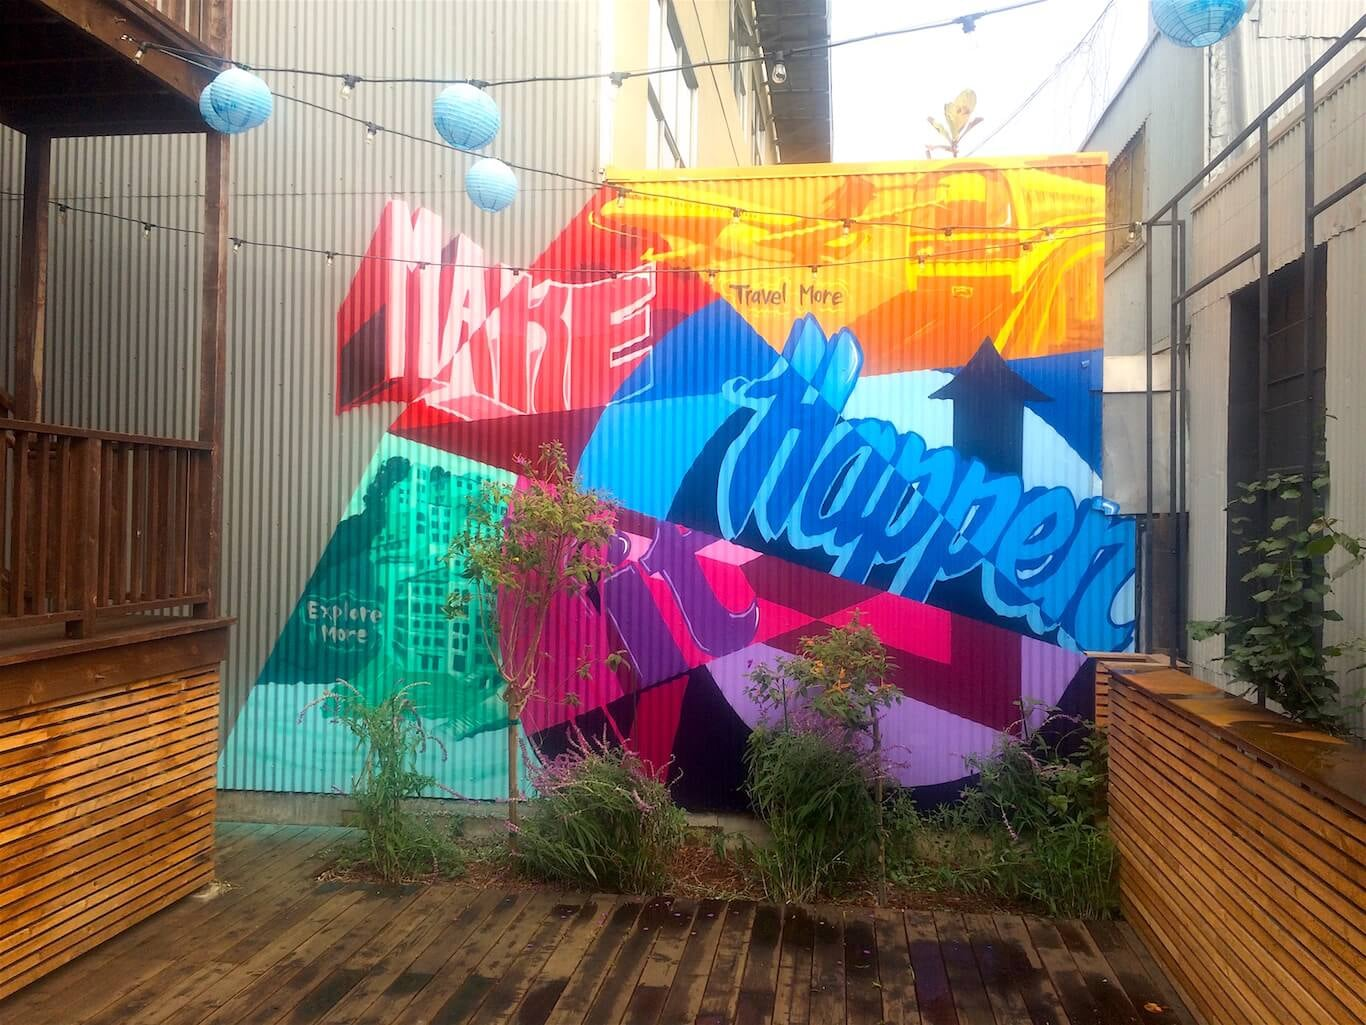 Commissioned Office Mural for Bluesmart | SOMA San Francisco USA, 2015